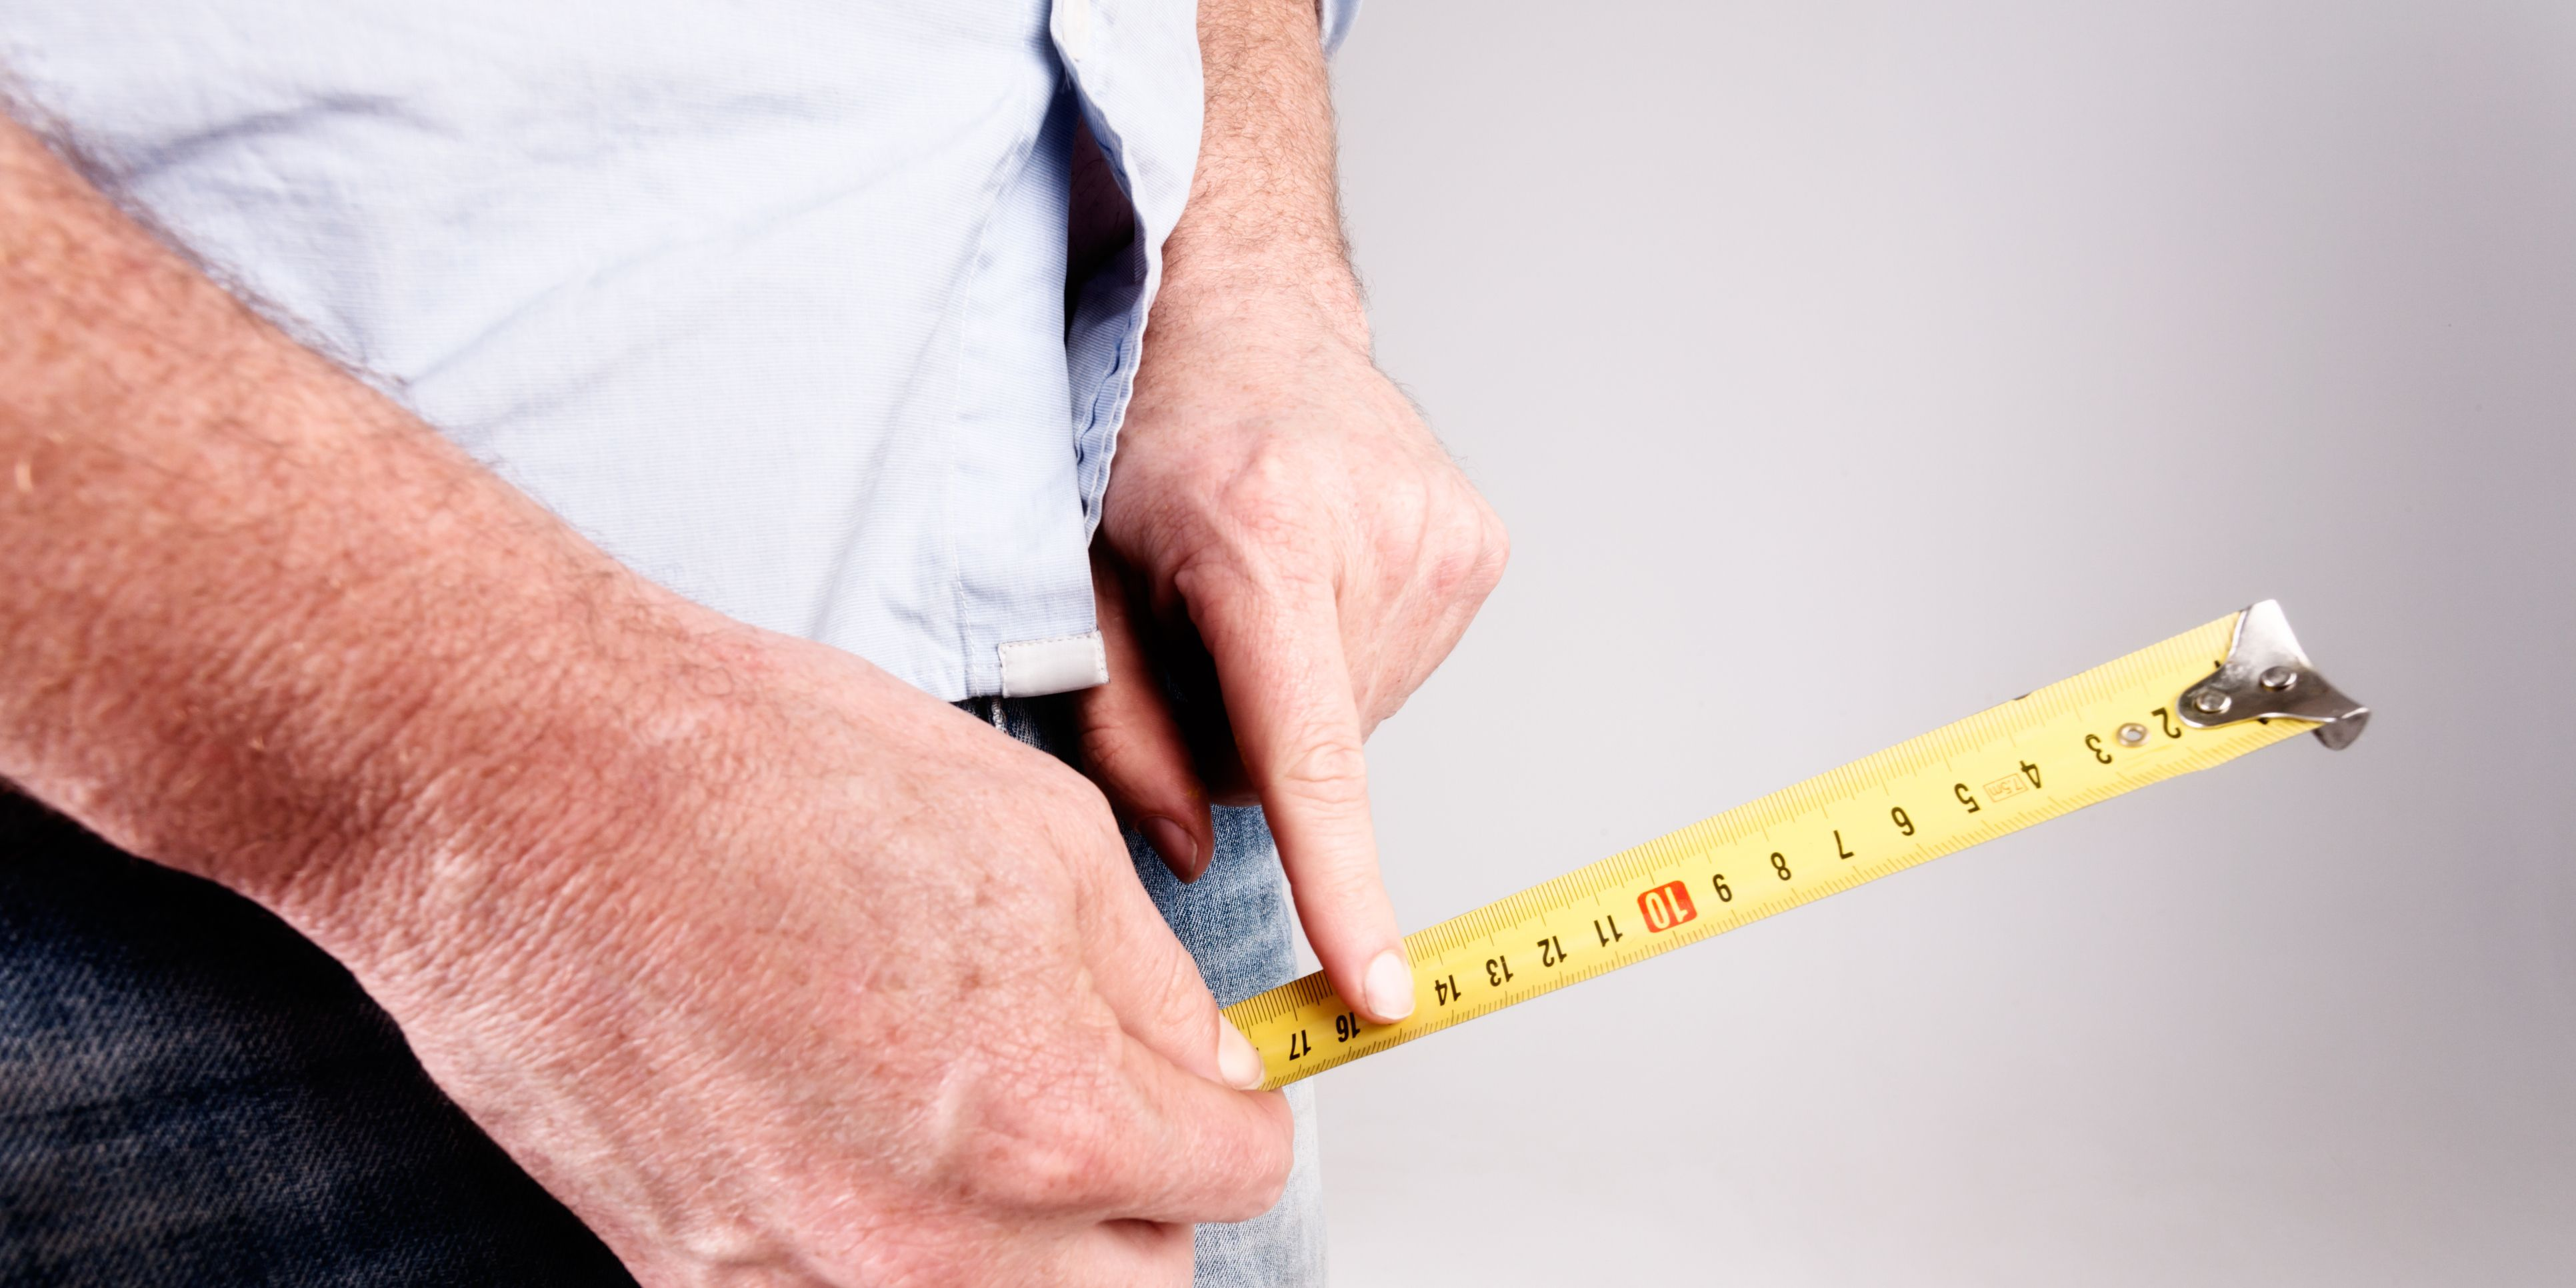 Male hands hold measuring tape to crotch